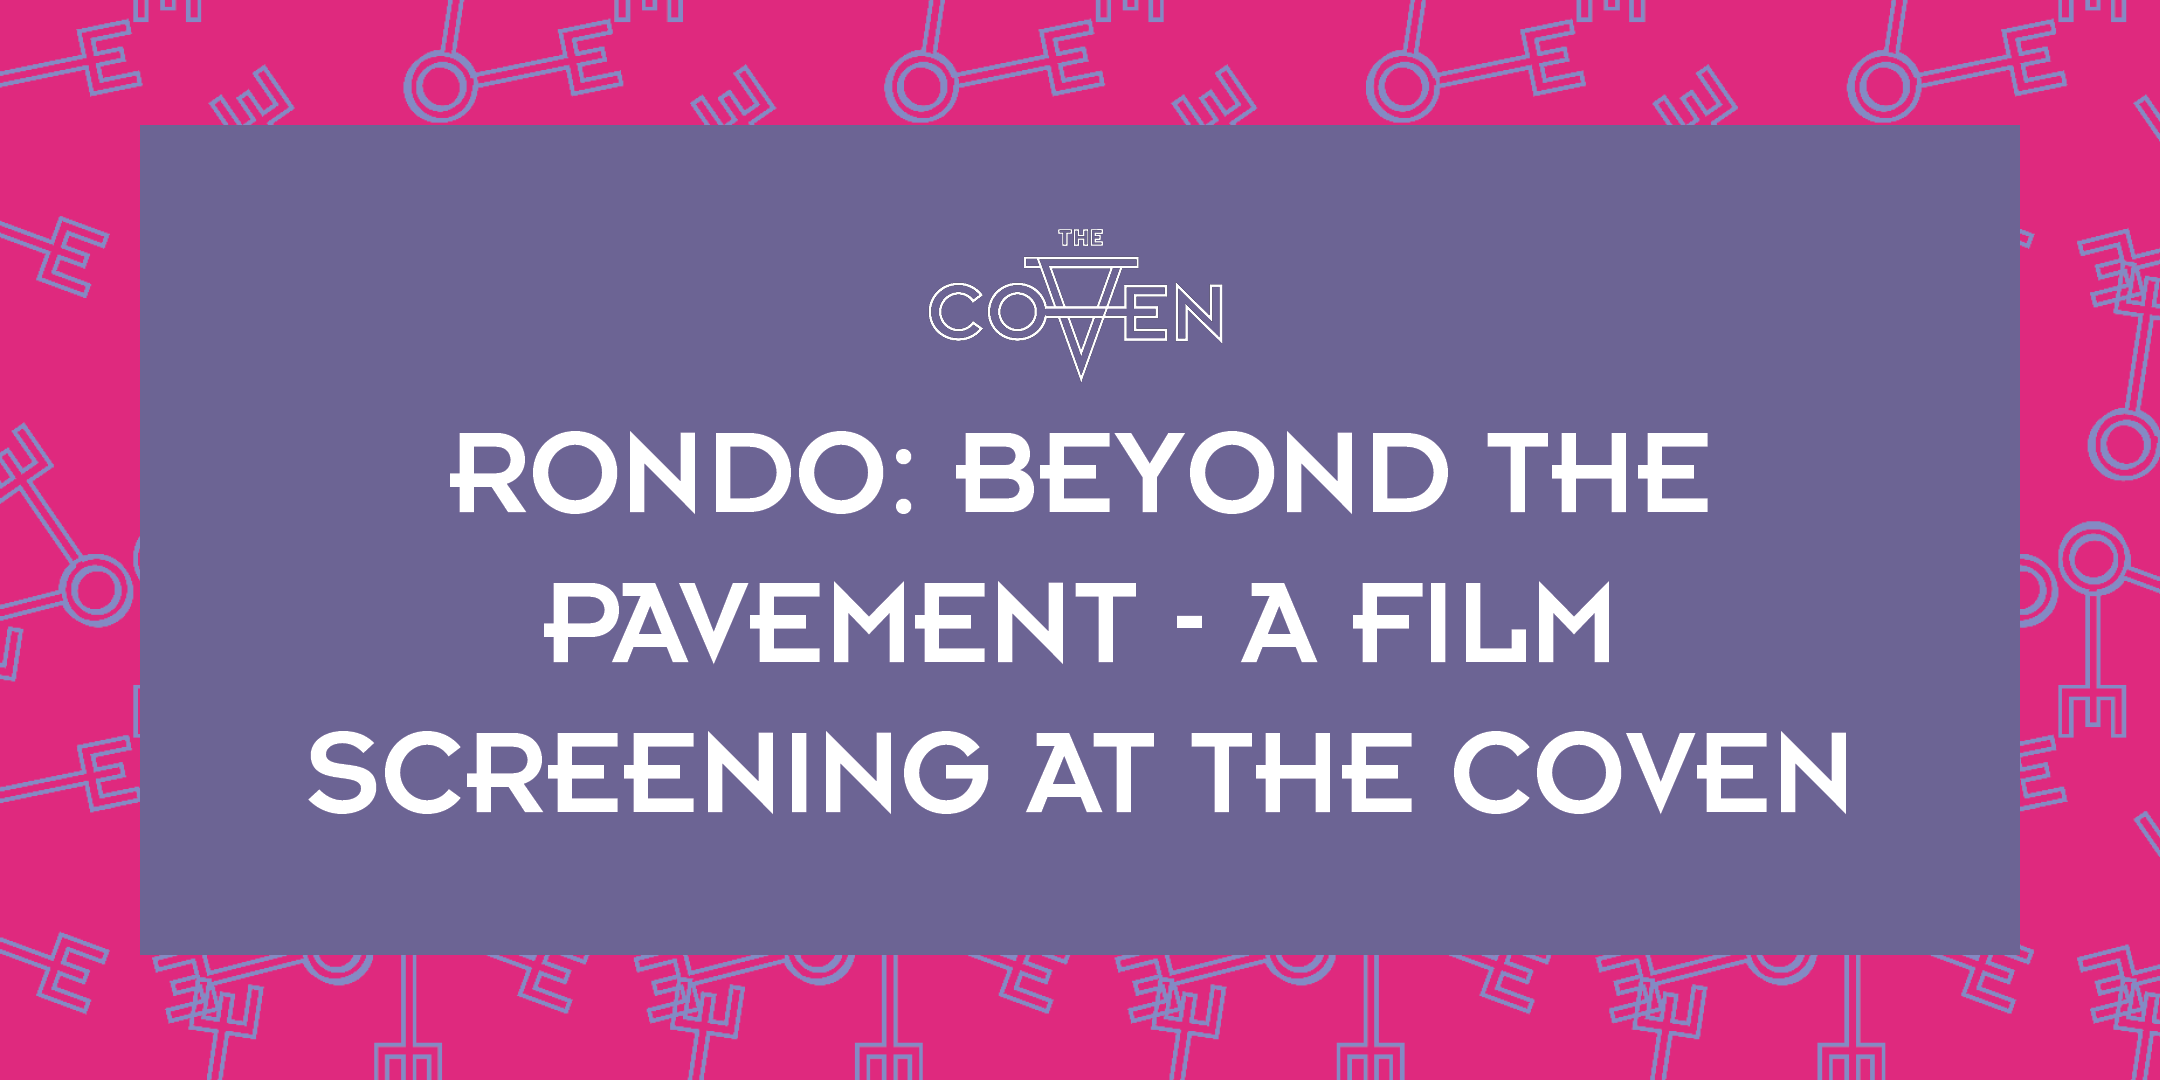 Rondo: Beyond the Pavement - A Film Screening at The Coven